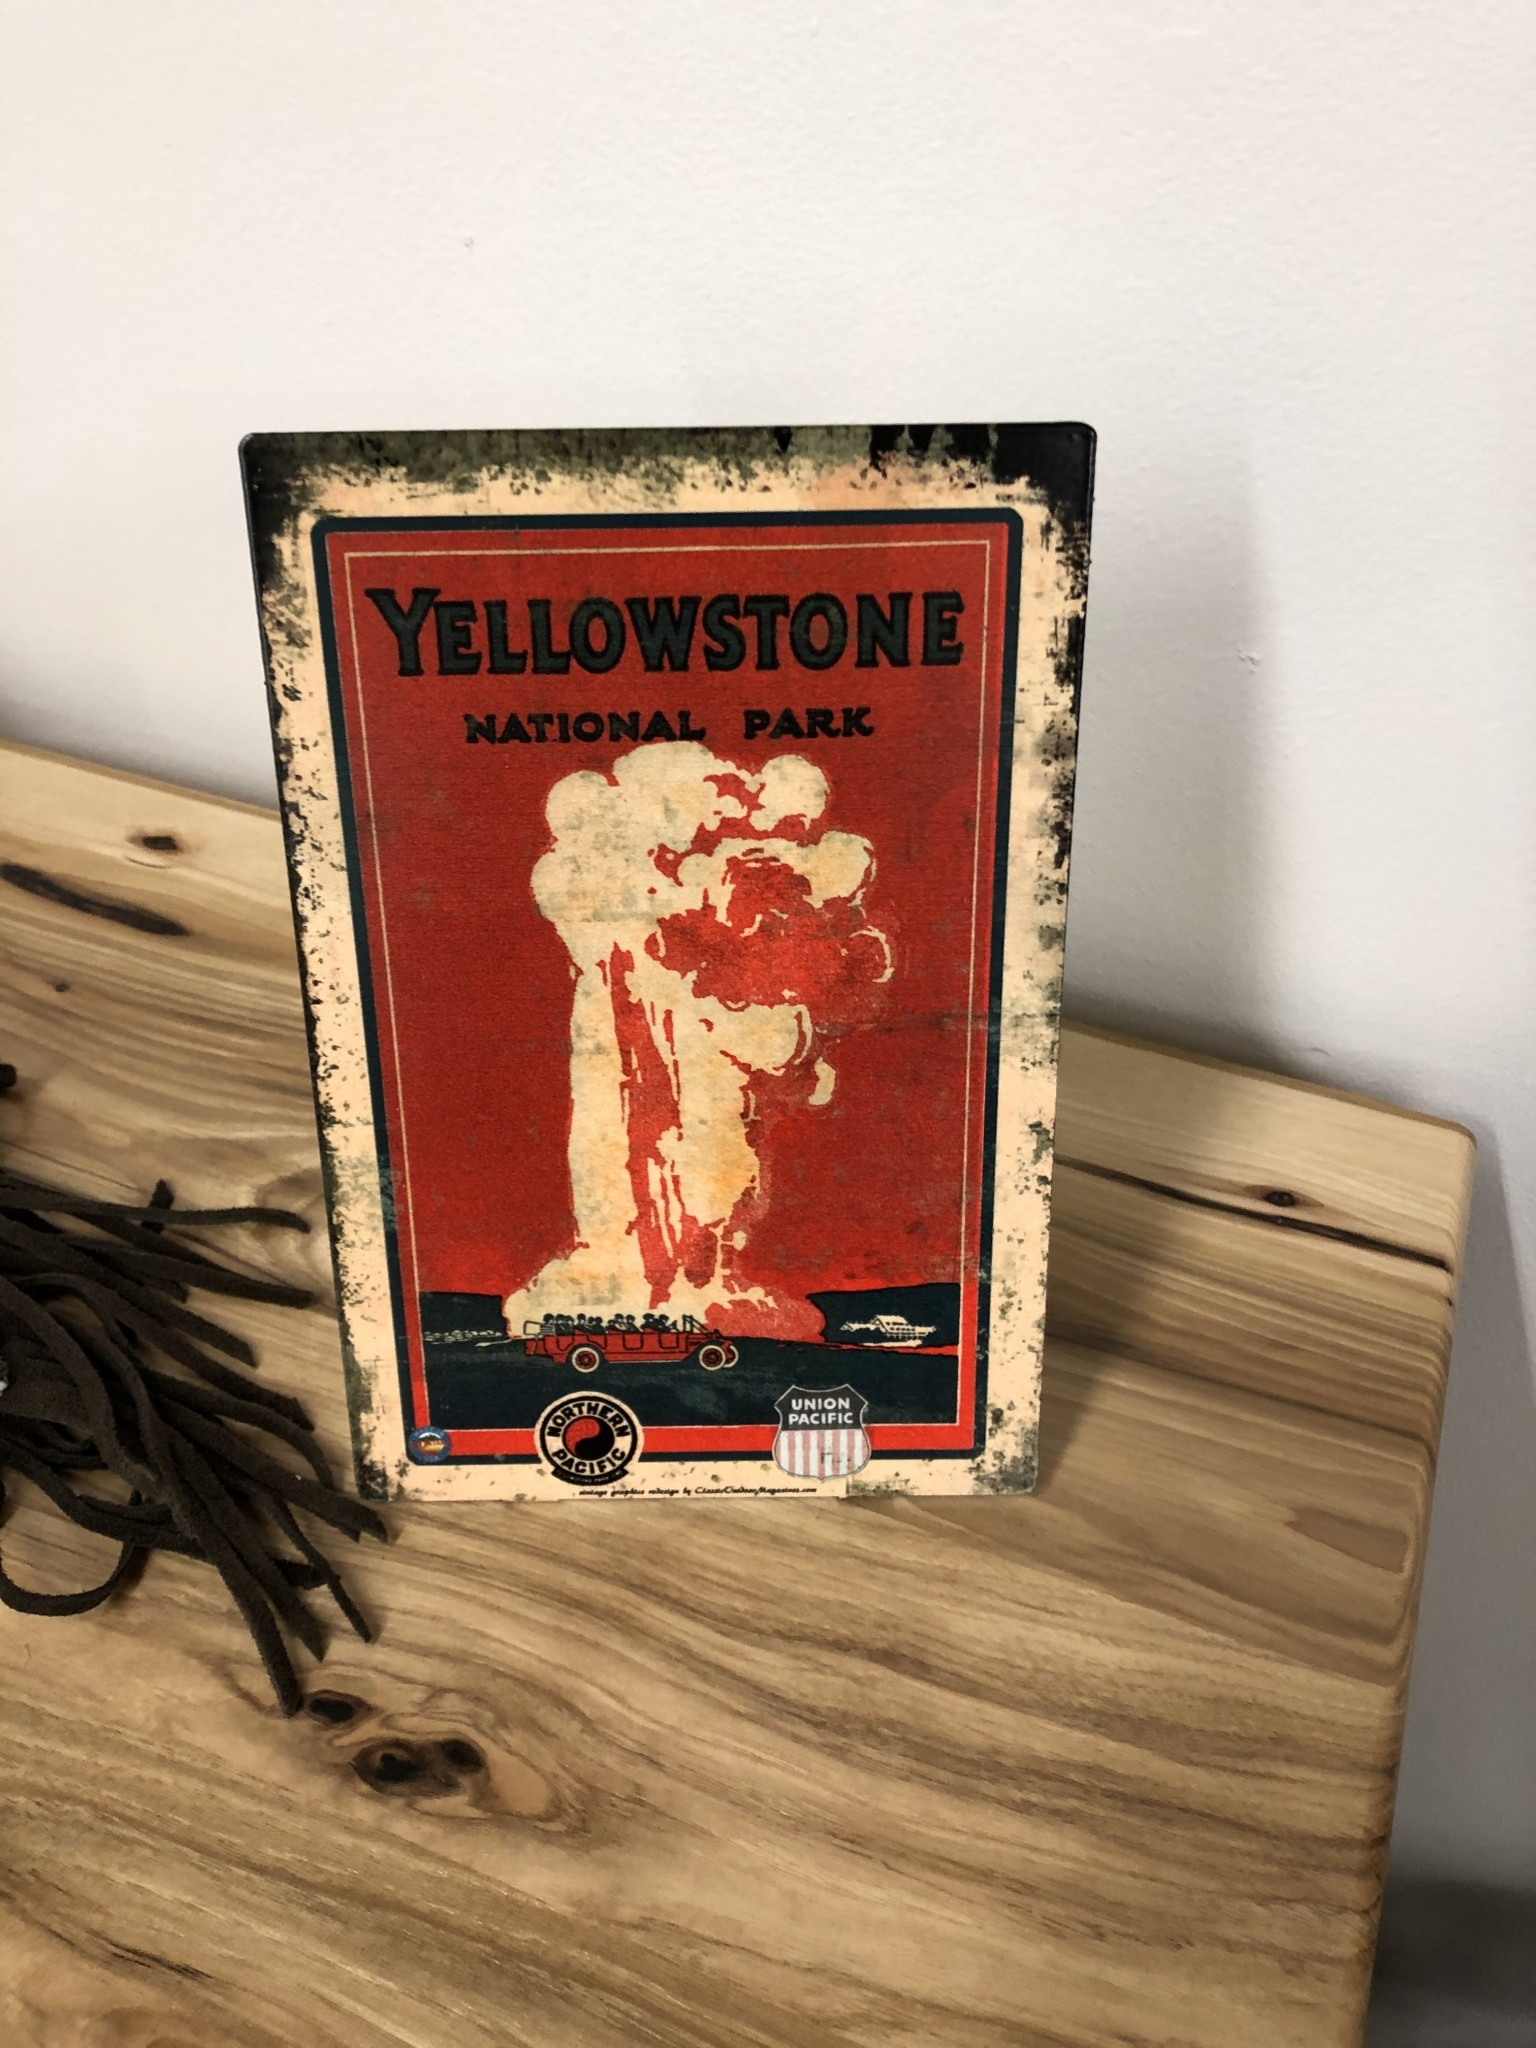 Classic Outdoor Magazines #13 Yellowstone Red Bus Table Topper